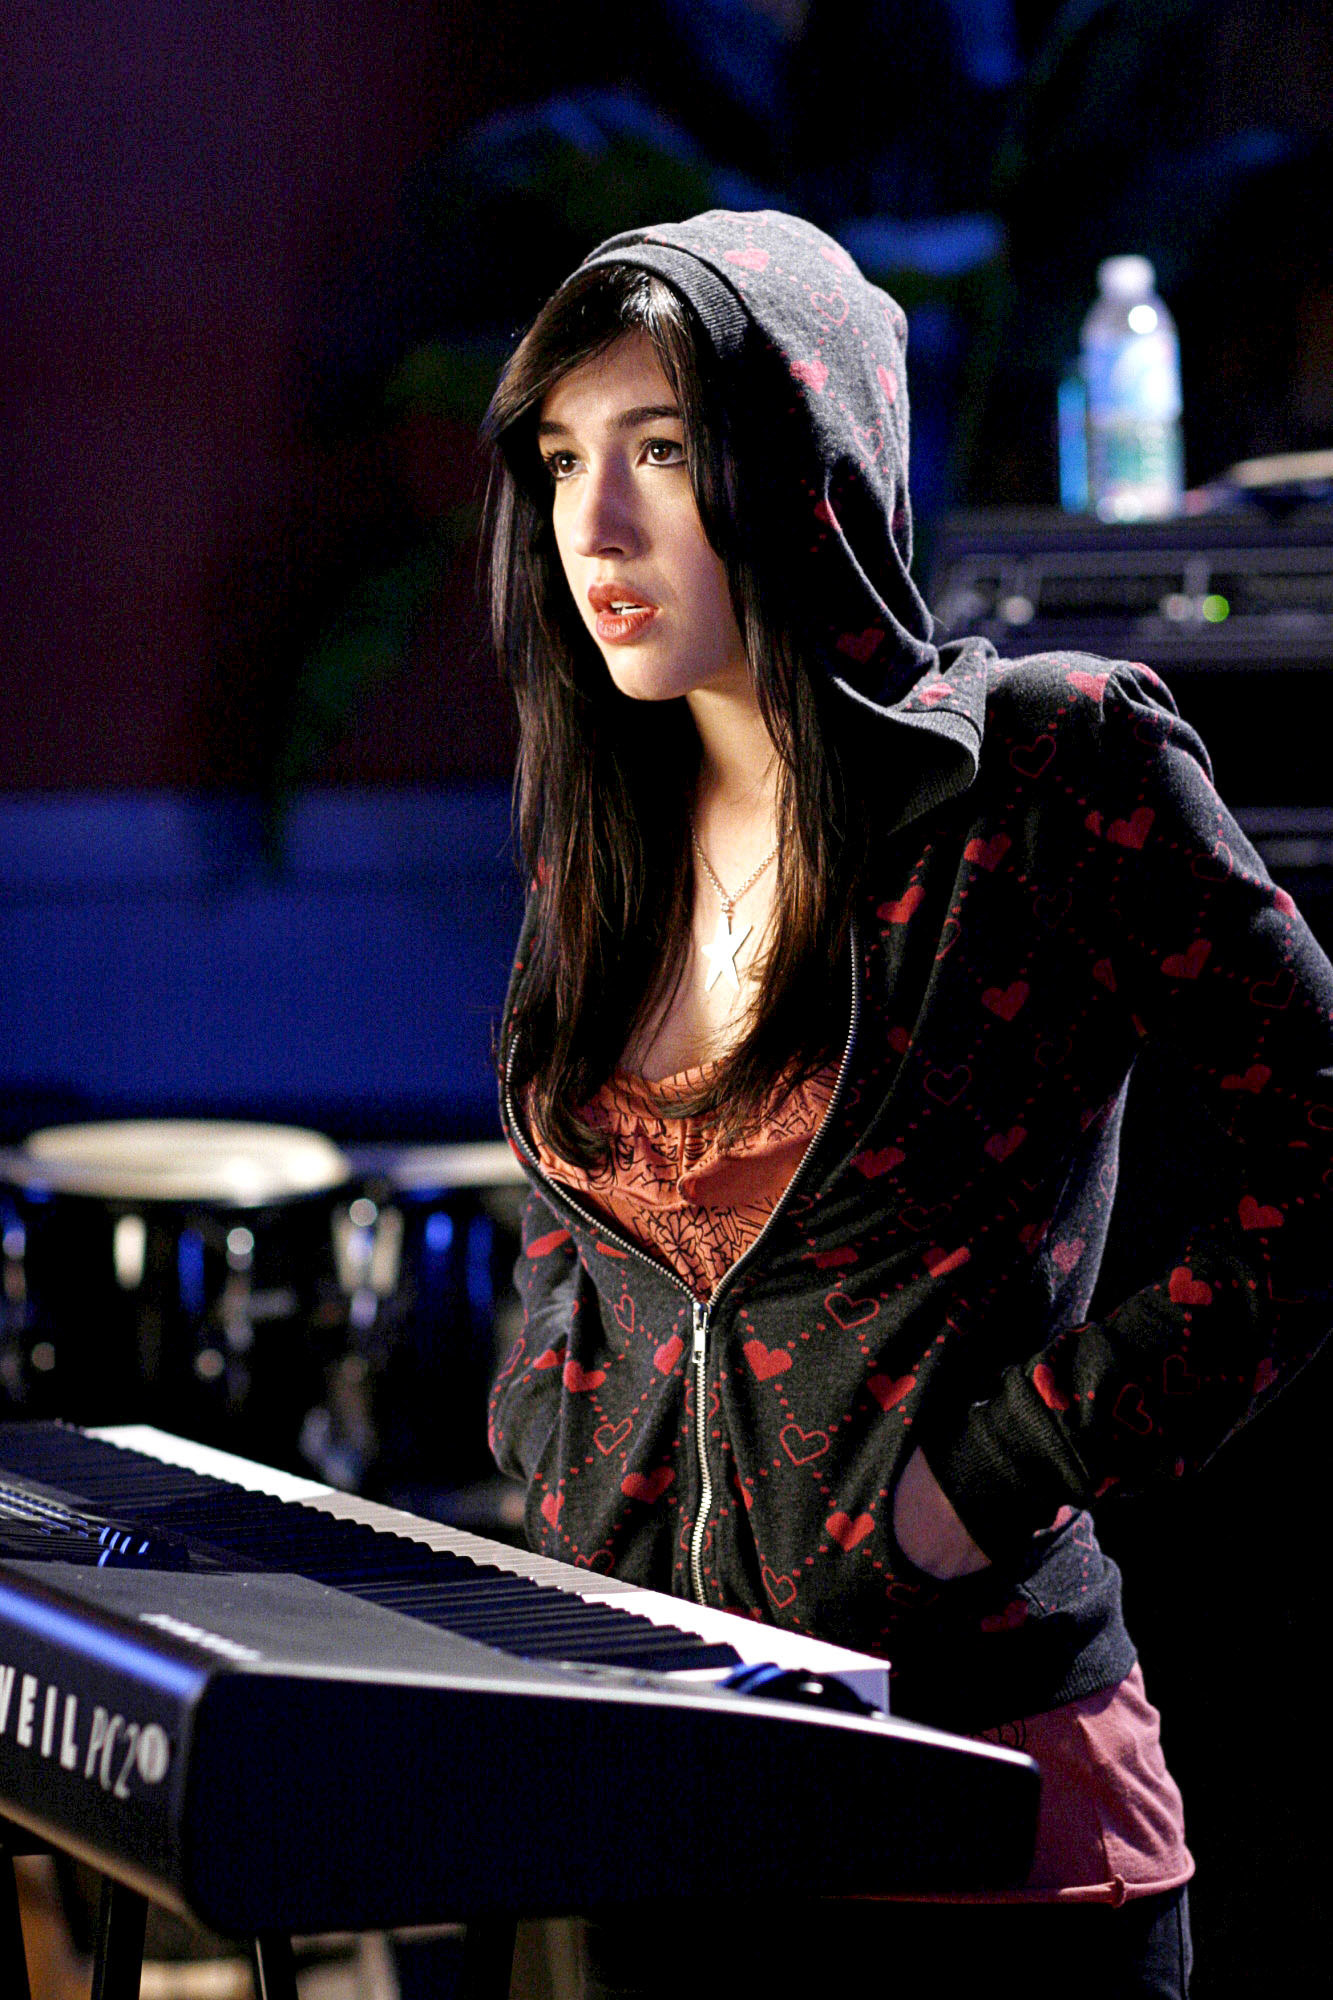 Kate Voegele as Mia in front of the piano